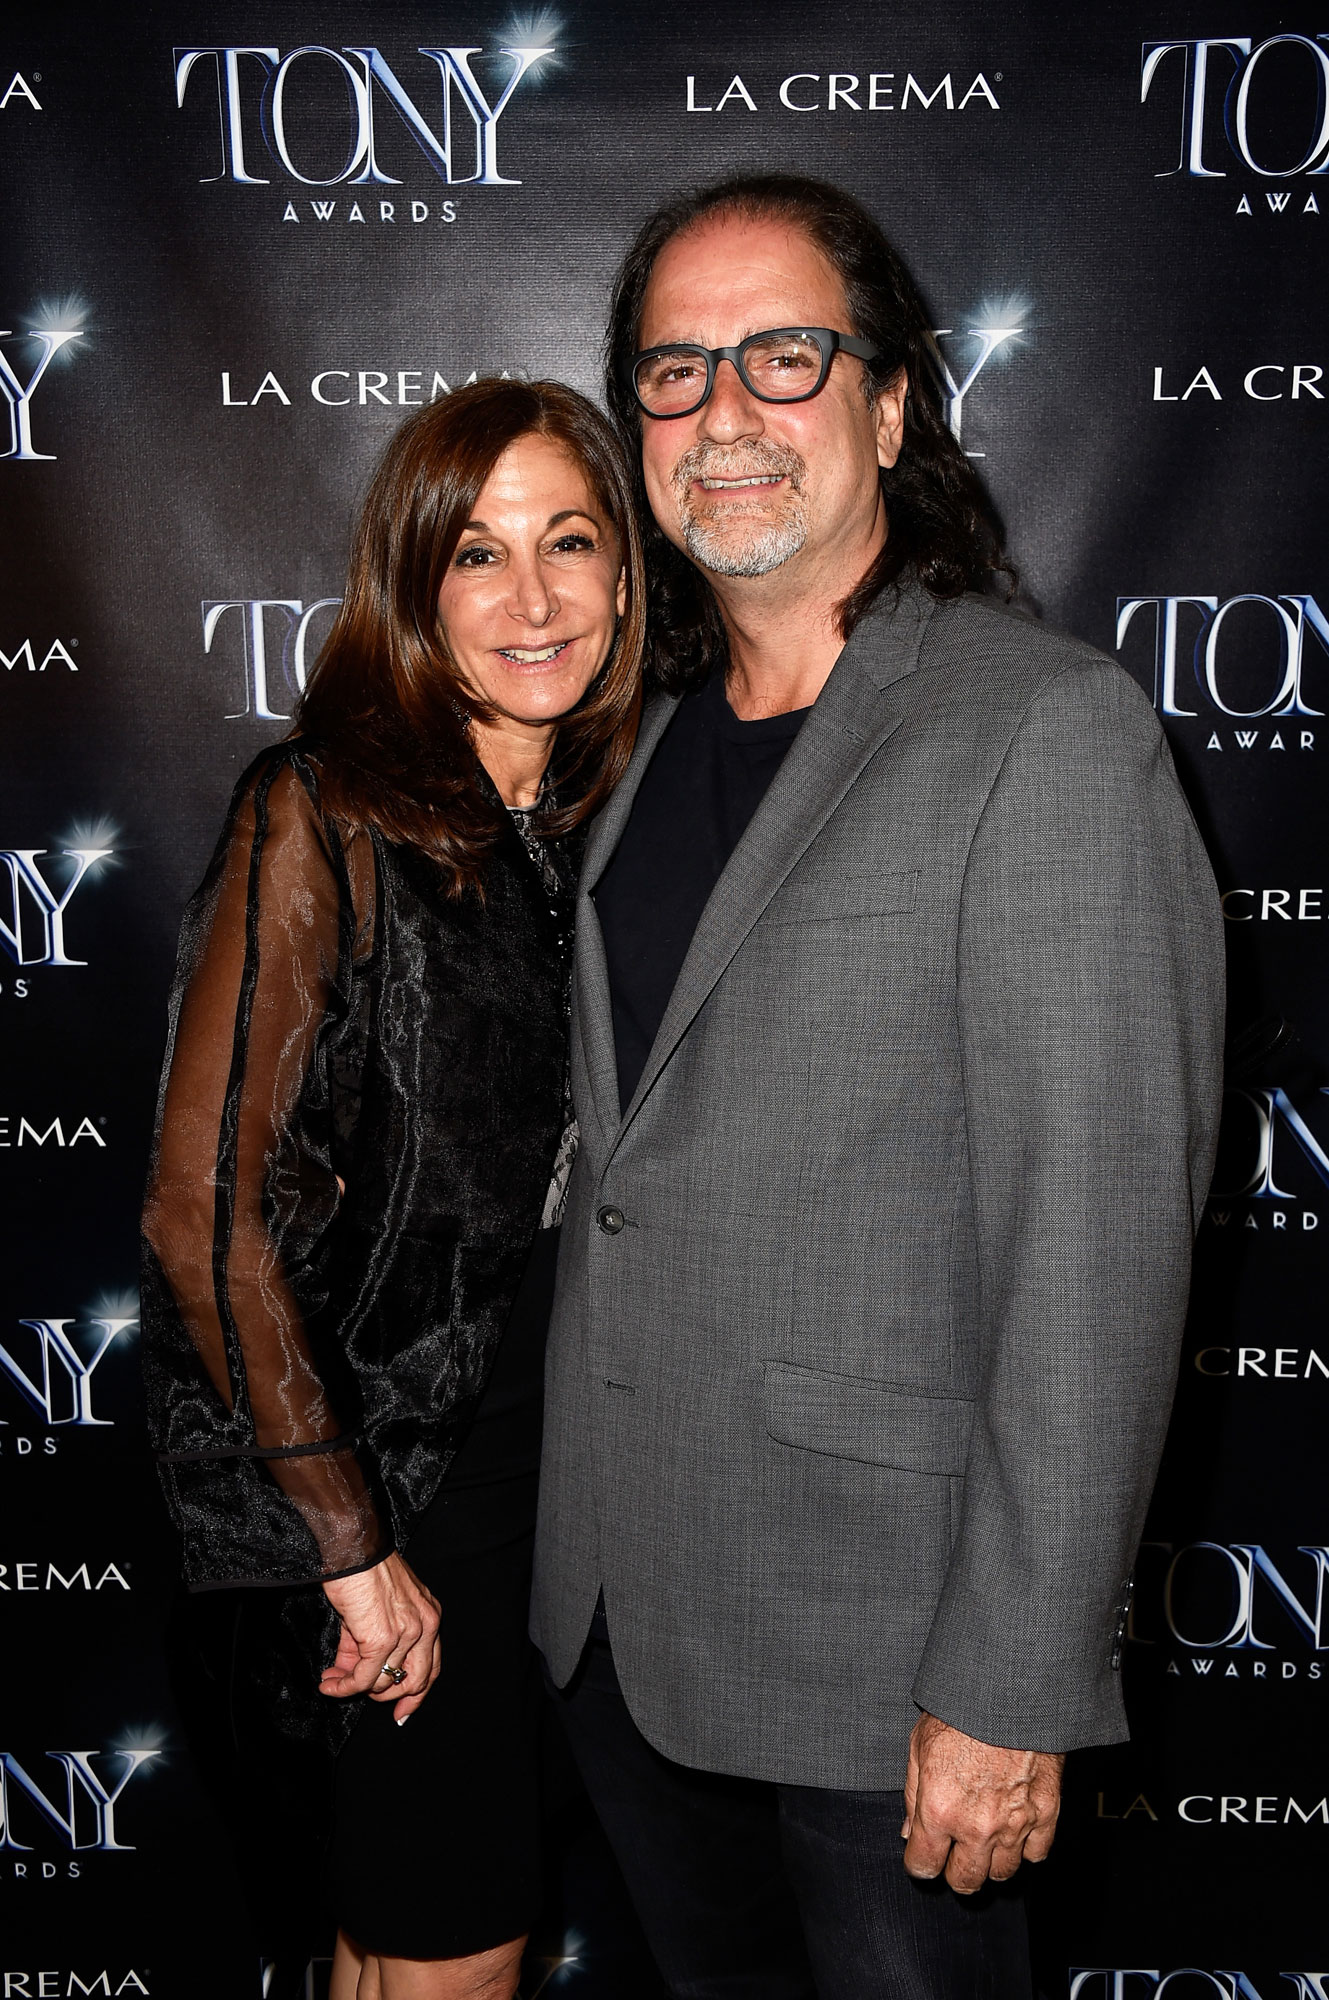 Glenn Weiss Jan Svendsen - The Broadway League Director of Marketing and Business Development Jan Svendsen (L) and Director Glenn Weiss attend The Tony Awards celebration of Broadway in Hollywood at Sunset Towers on March 25, 2015 in West Hollywood, California. (Photo by Frazer Harrison/Getty Images for THE TONY AWARDS)